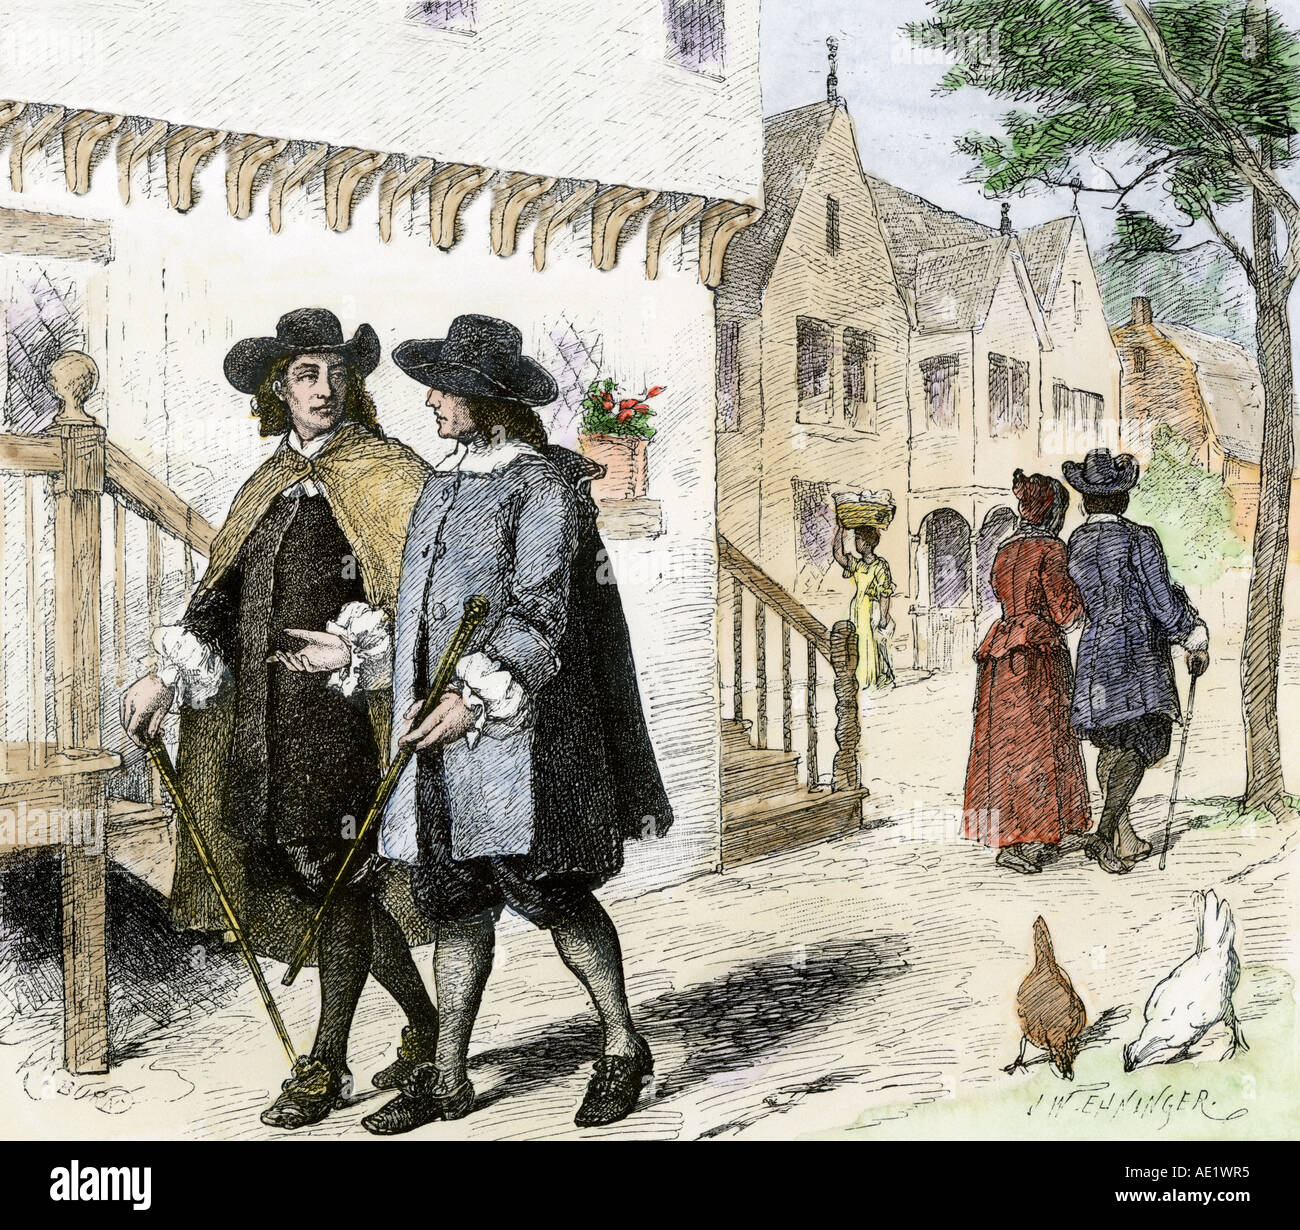 Colonists In A Puritan Town In New England In The Late